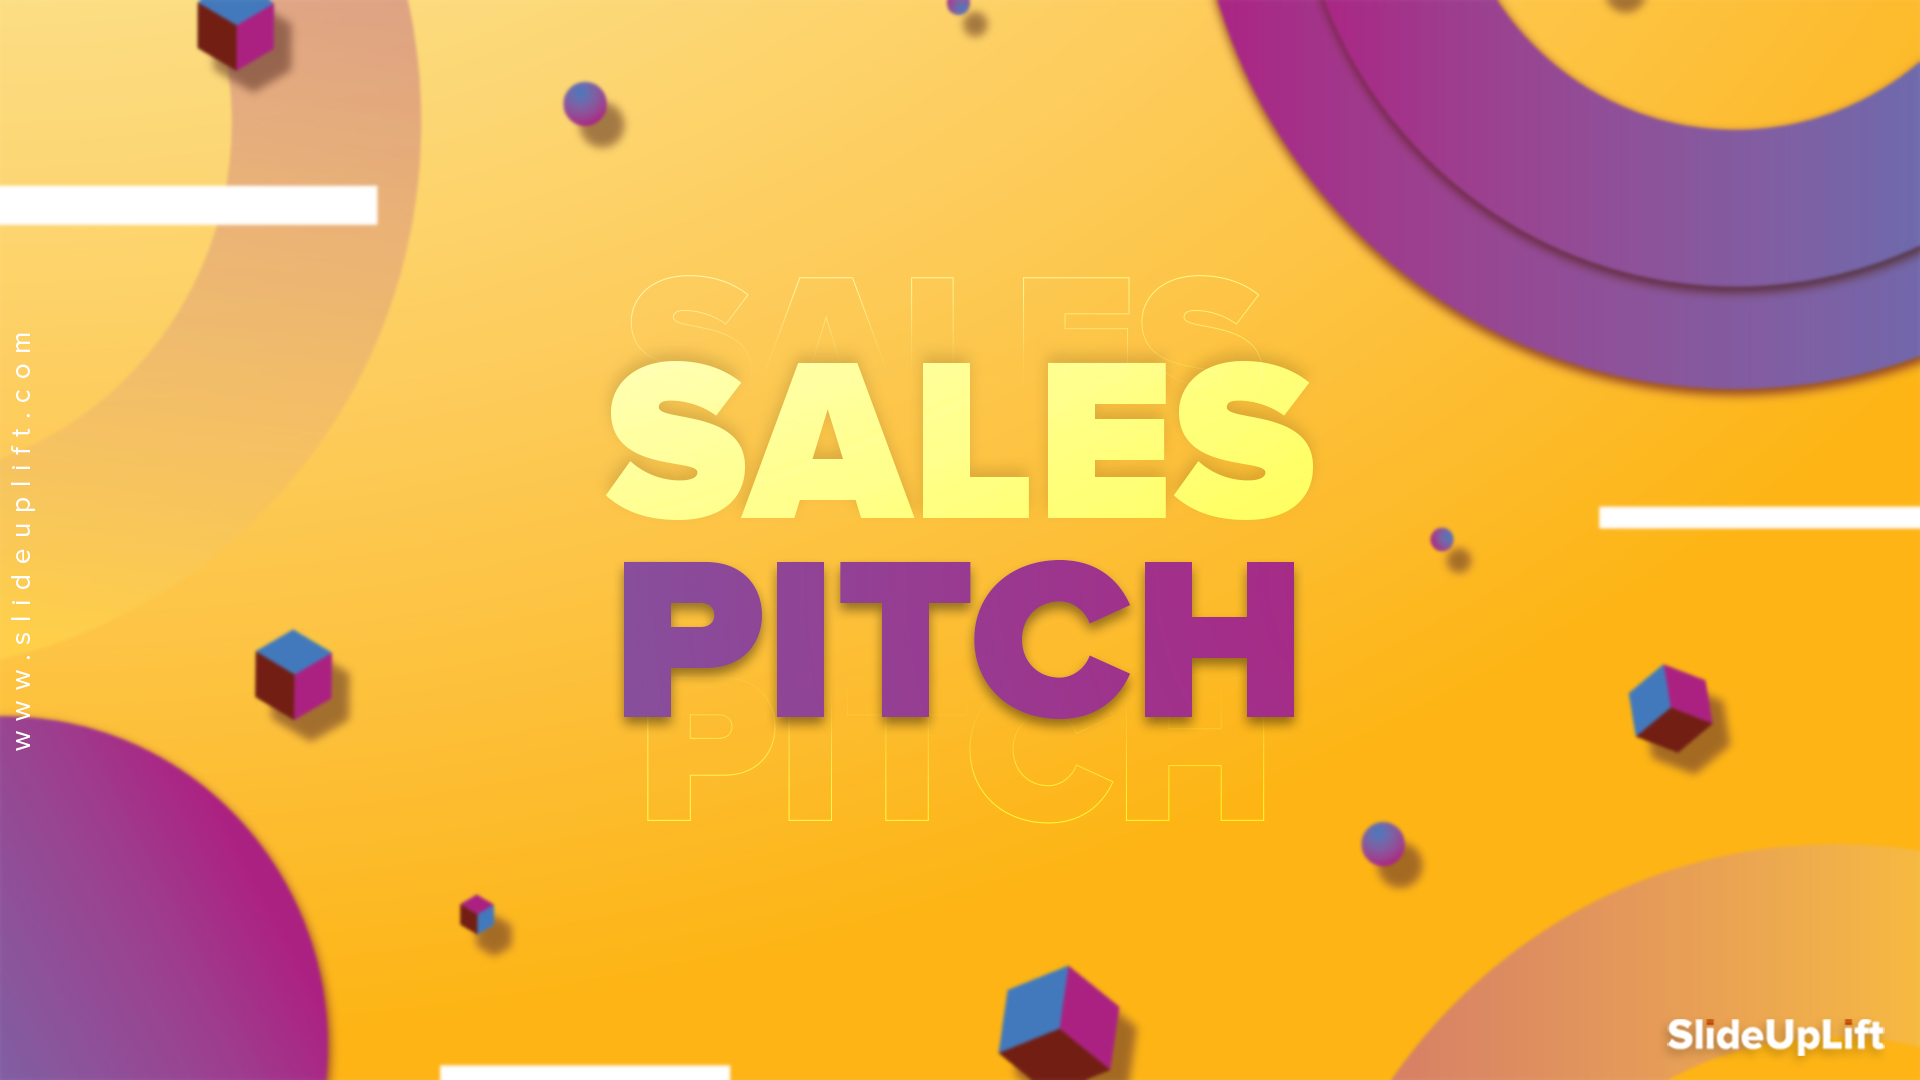 How To Write An Effective Sales Pitch Plus Best Sales Presentation Templates to build Winning Sales Pitch